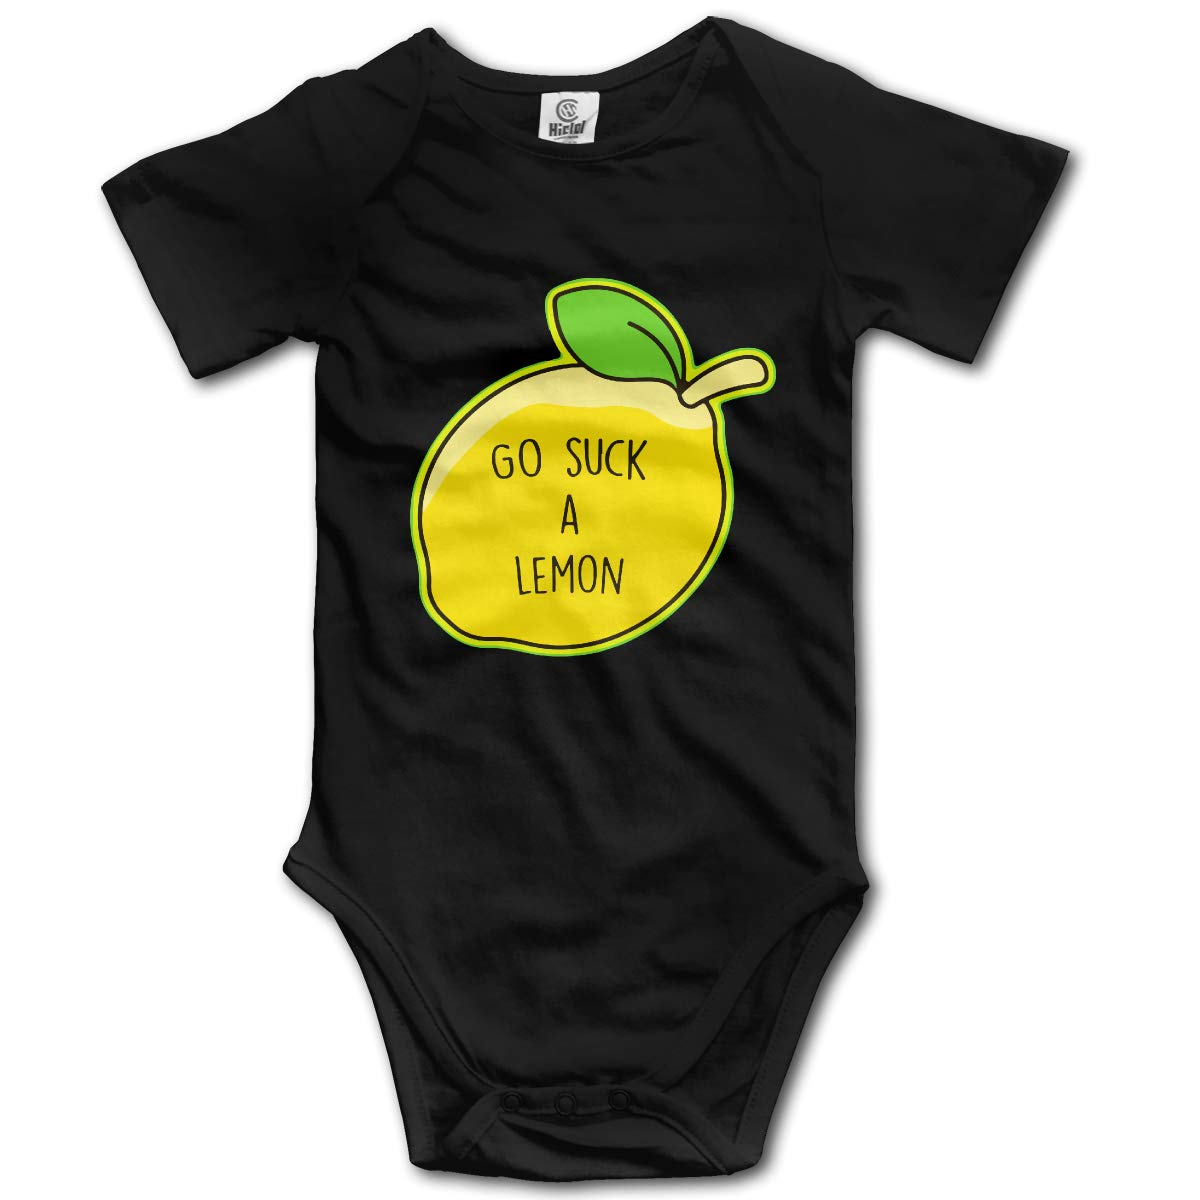 J122 Go Suck A Lemon Suit 6-24 Months Baby Short Sleeve Baby Clothes Climbing Clothes